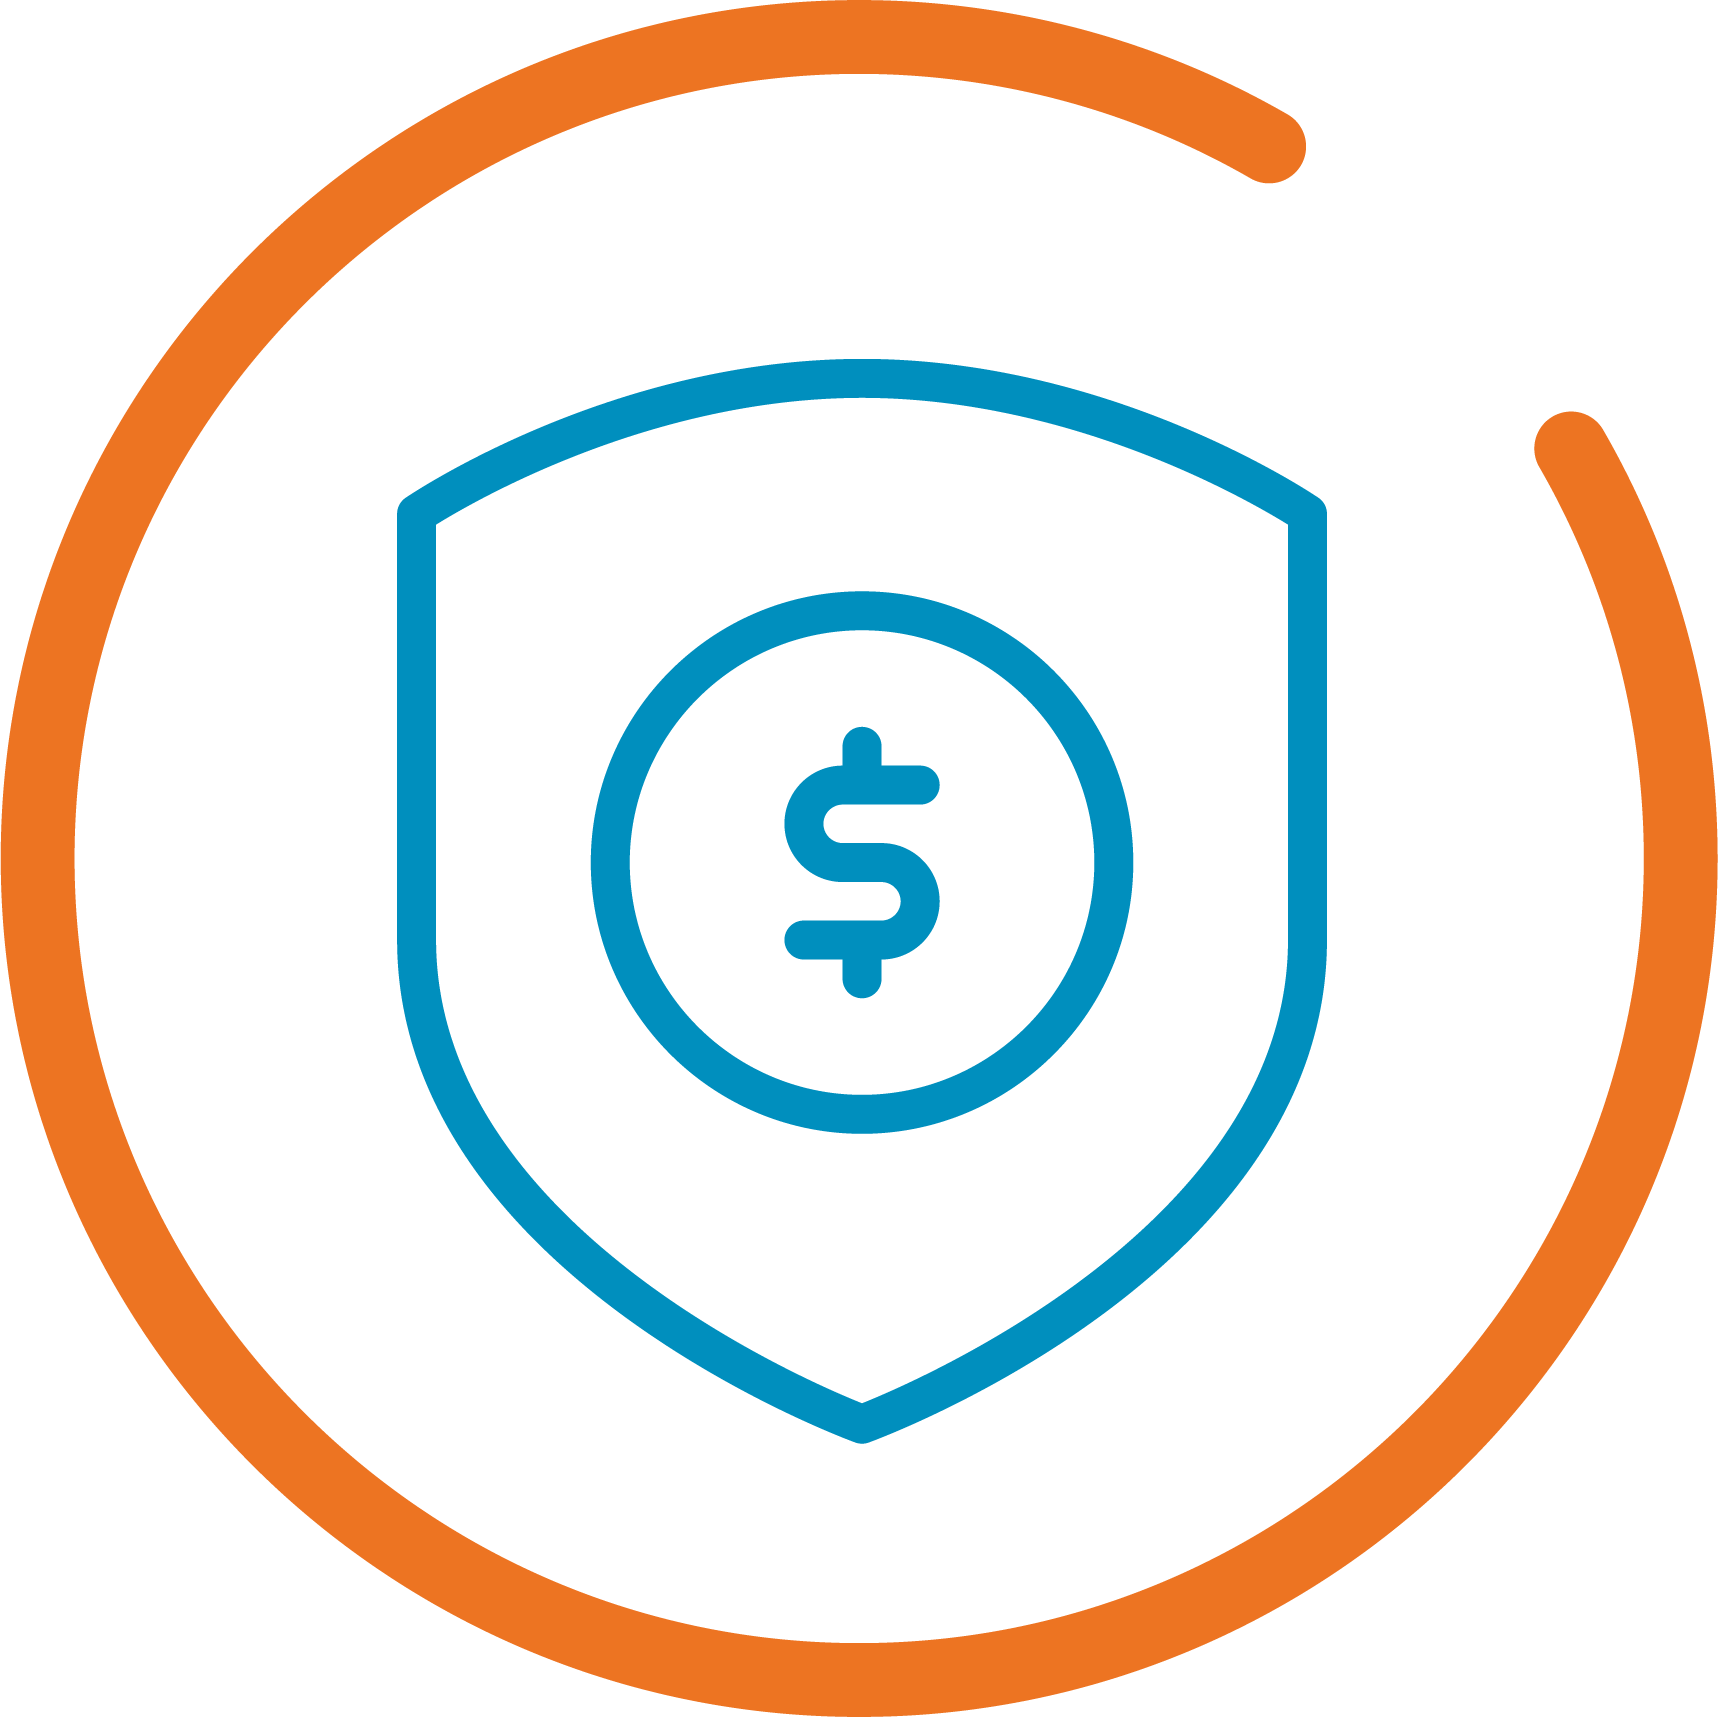 icon of secure money